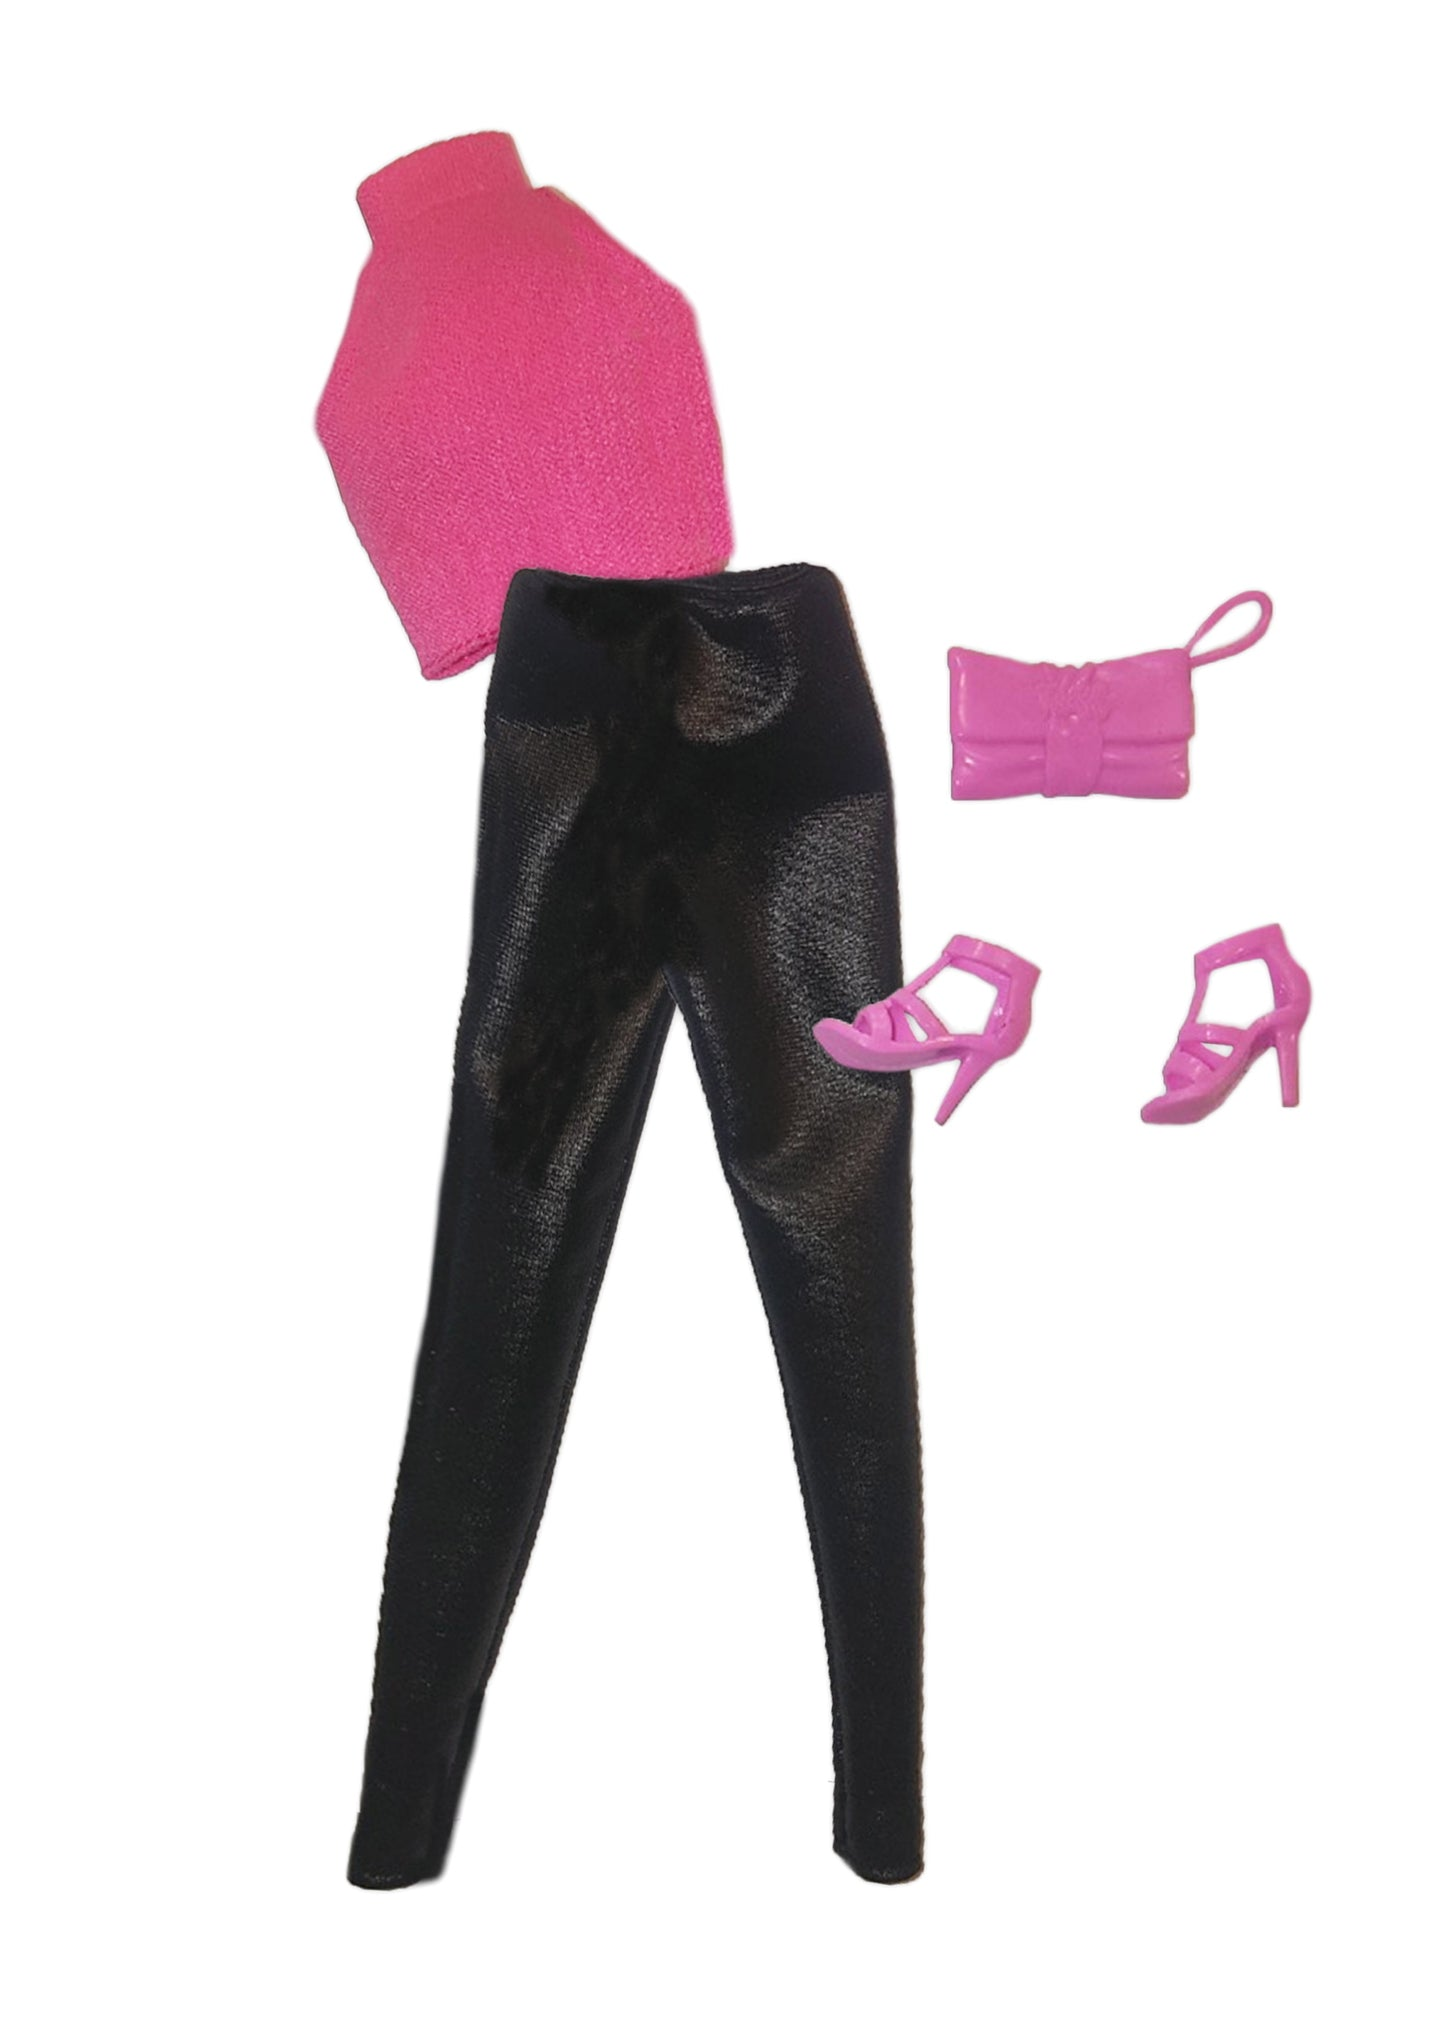 PRETTY IN PINK Crop Top & Black Leggings Doll Fashion Pack